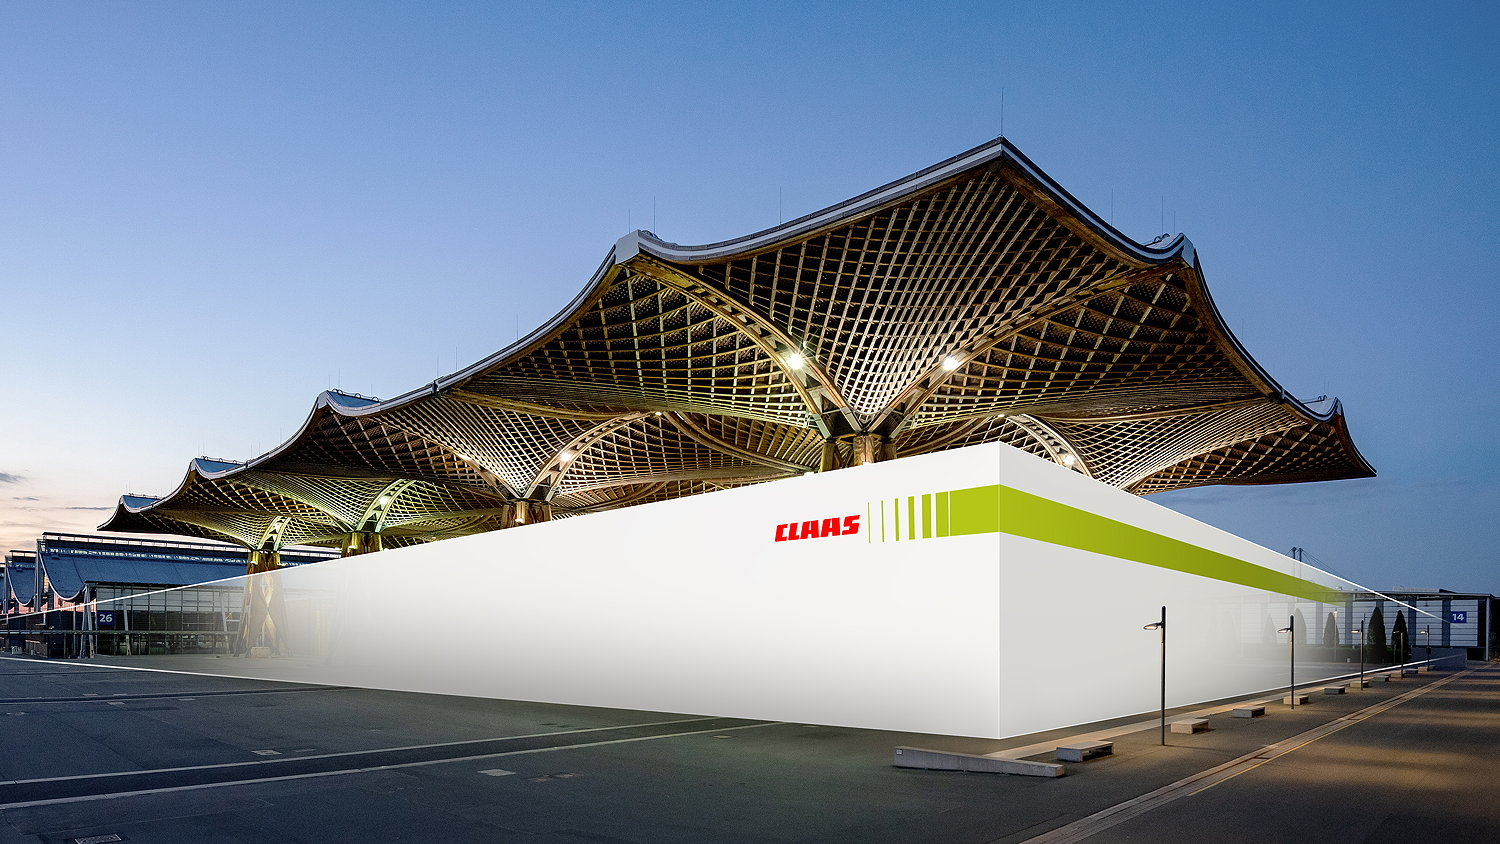 Claas will exhibit outdoors at Agritechnica 2022